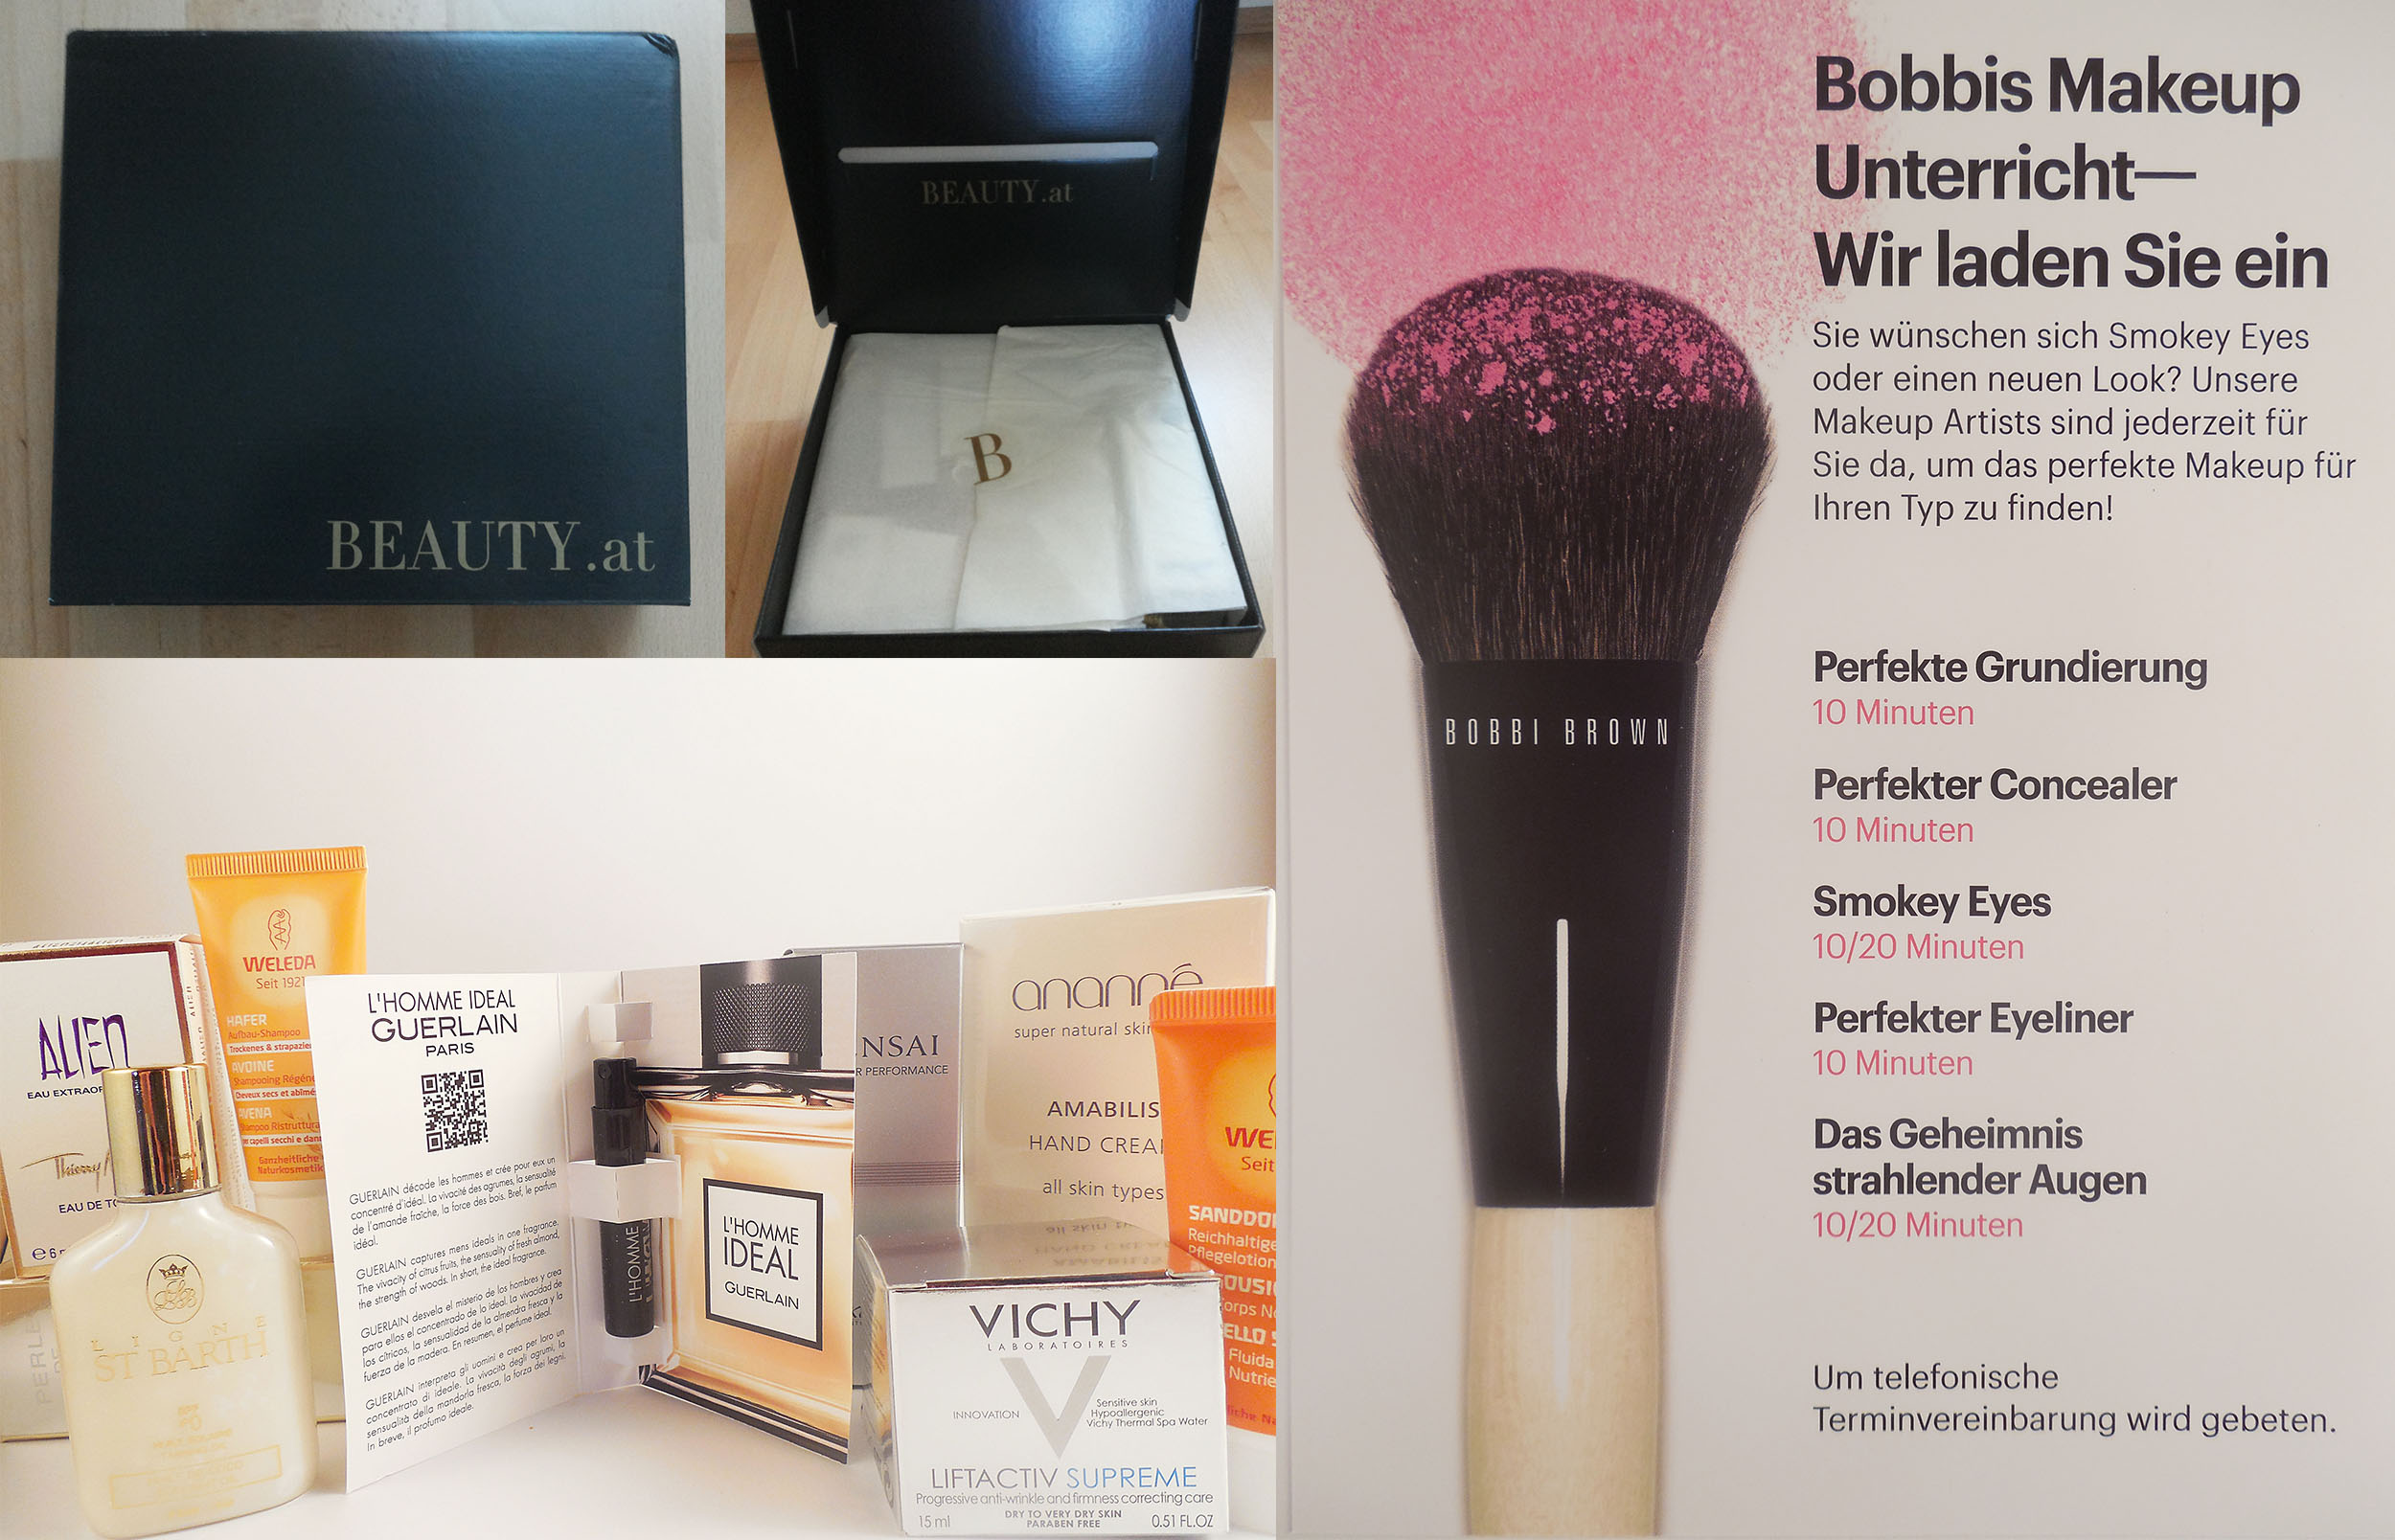 Beauty Box Review inkl. Feedback über Nägele&Strubell